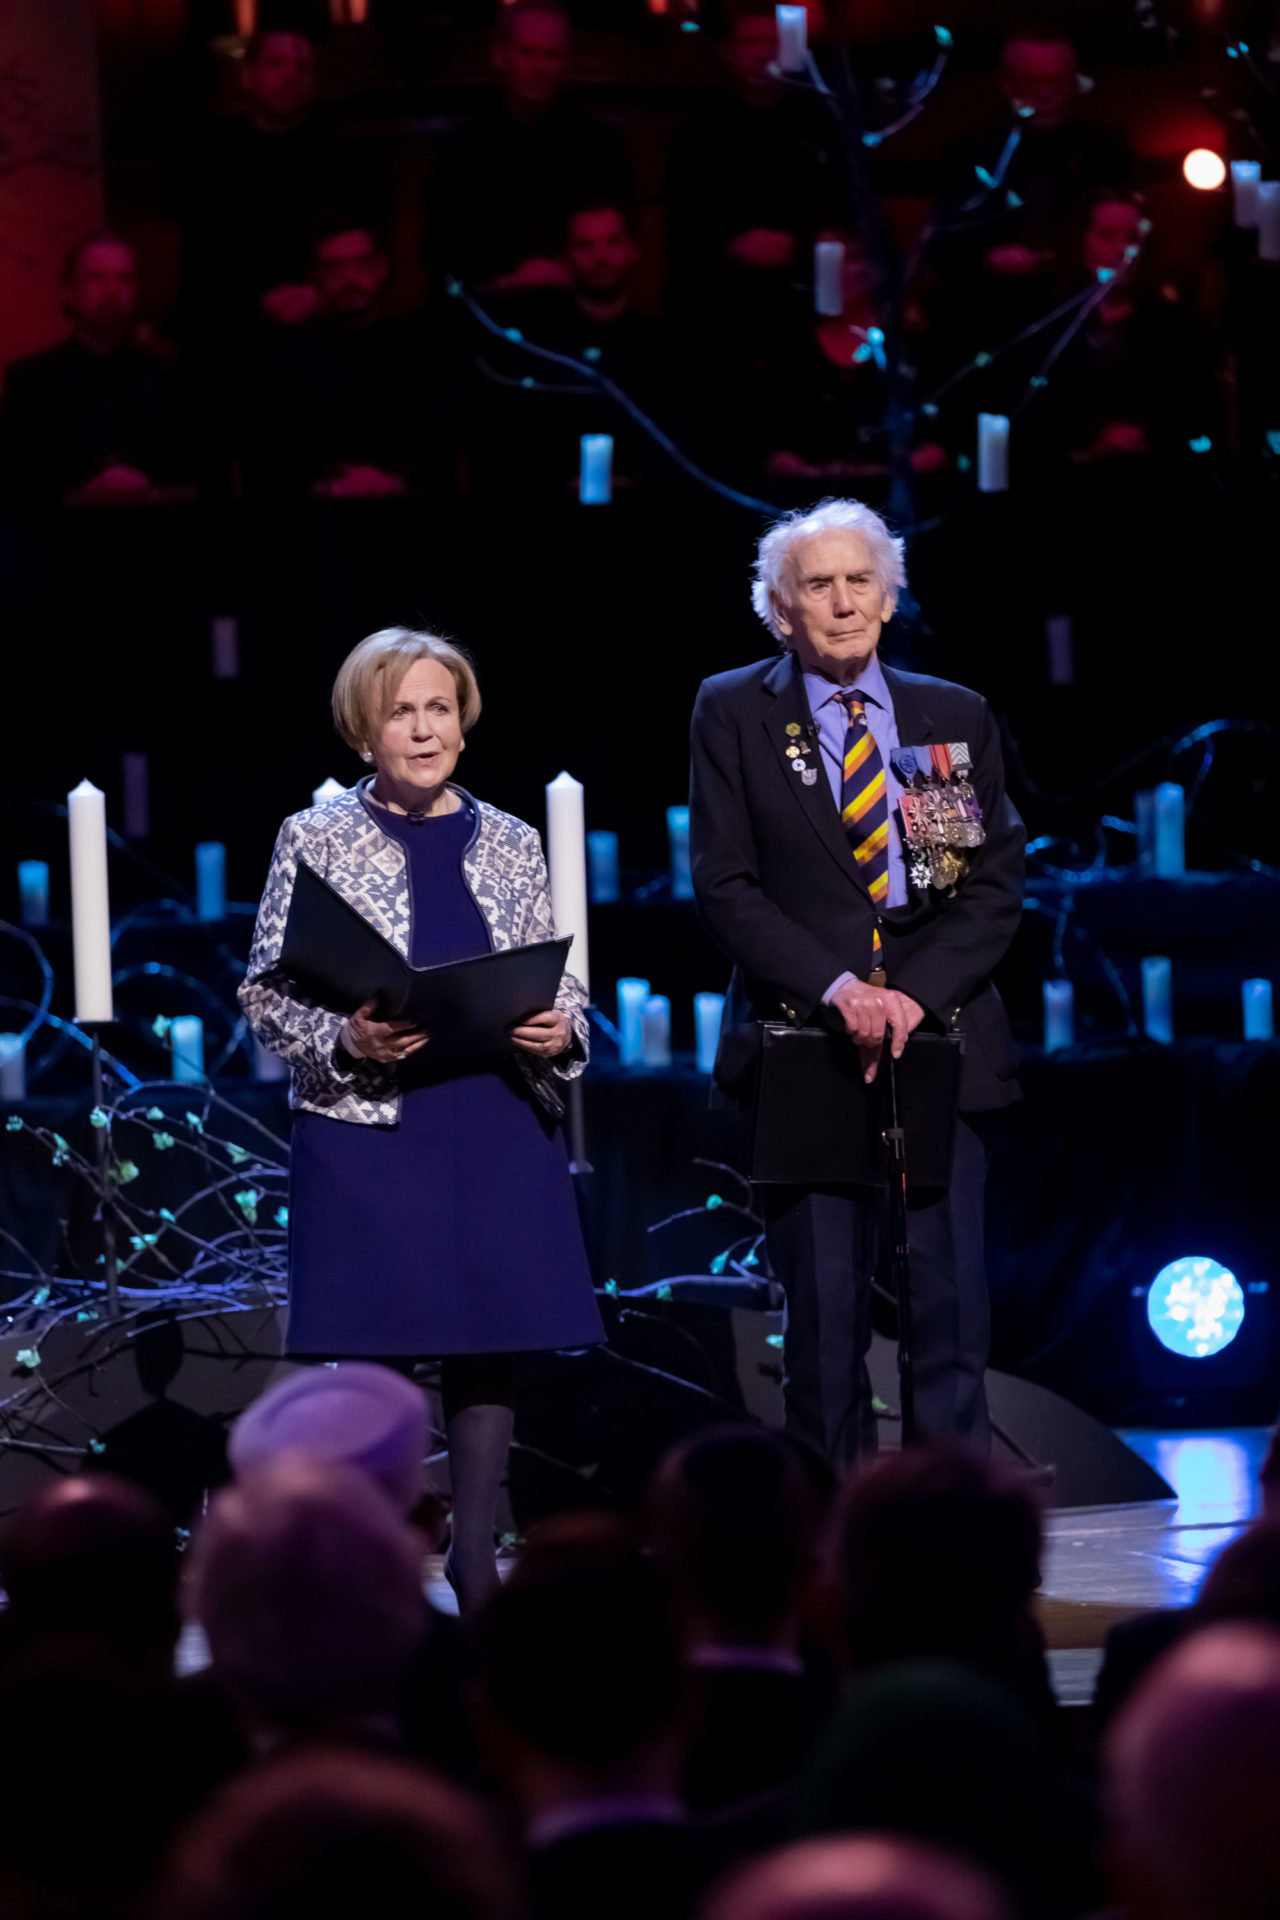 Holocaust survivor, Mala Tribich MBE and World War Two veteran, Ian Forsyth MBE, give their testimony